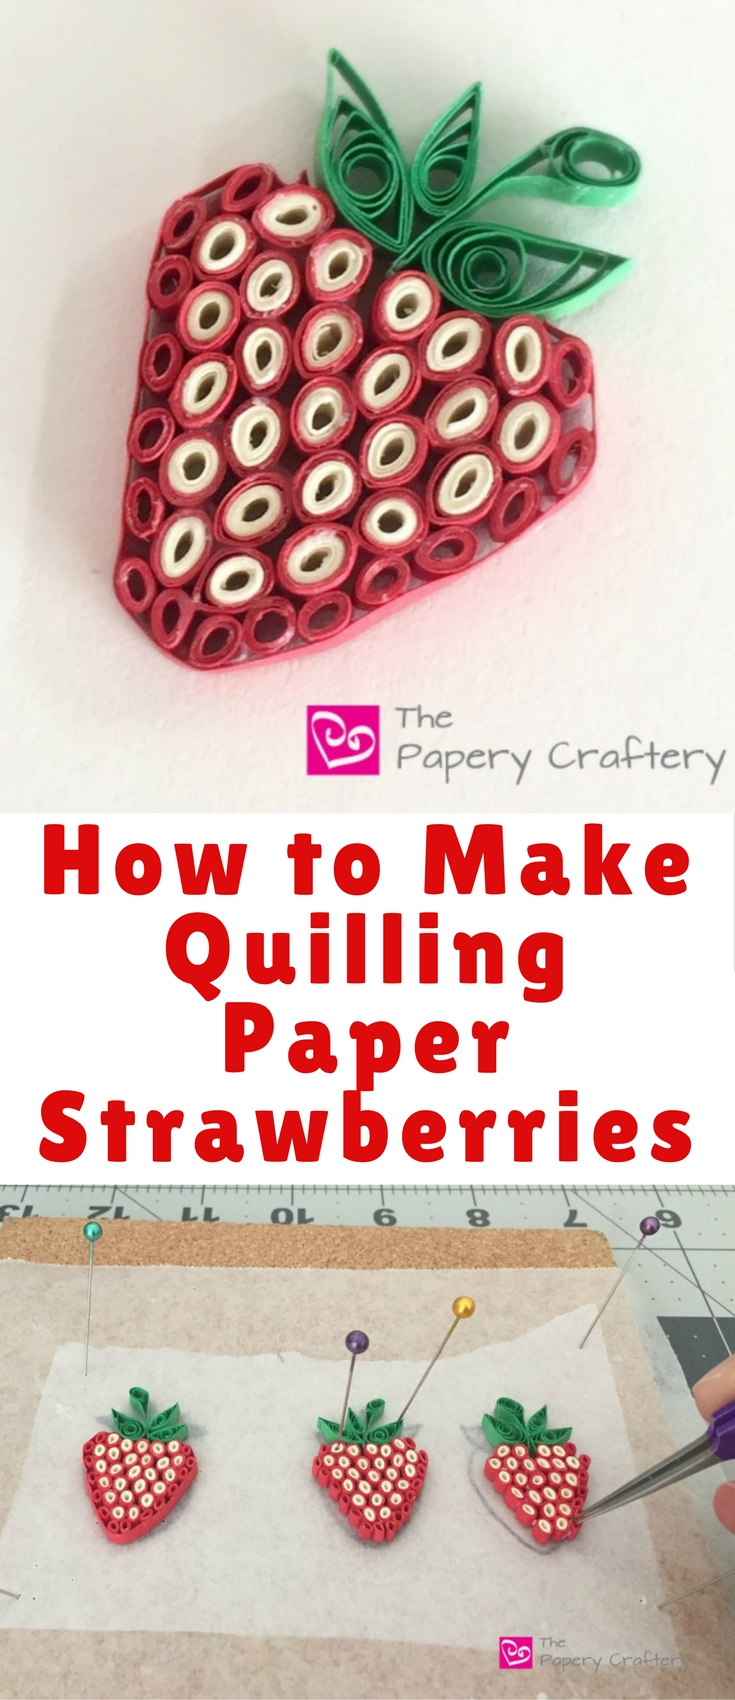 My kids love berries, and since they're always on my grocery list and in my fridge right now, I was inspired to make a tutorial on how to make quilling paper strawberries!